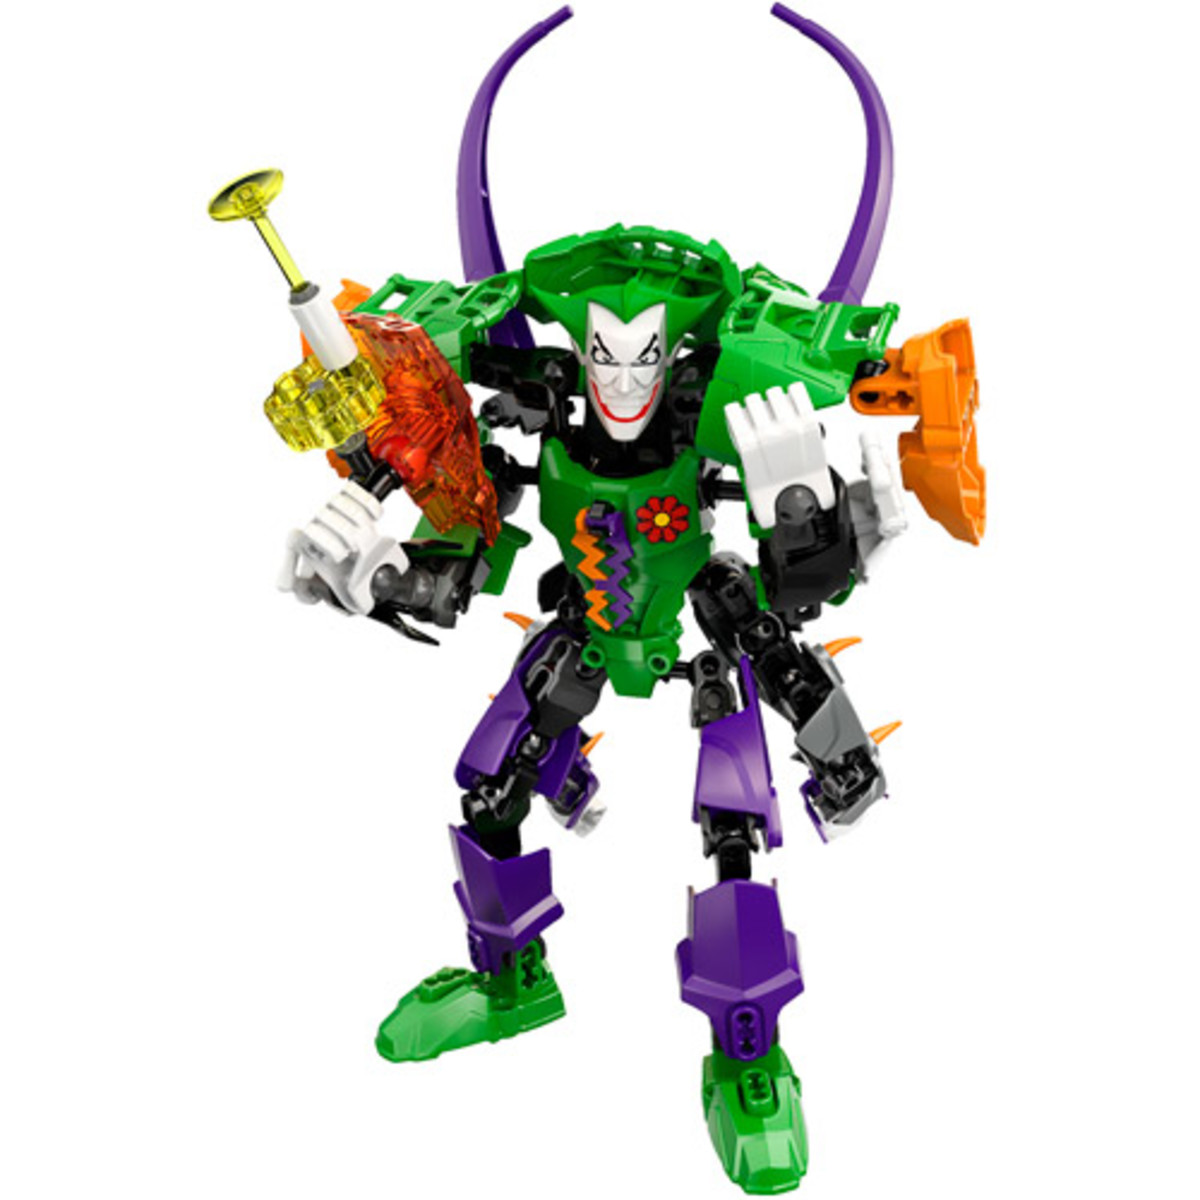 LEGO Ultrabuild Super Heroes Joker 4527 and Ultrabuild Green Lantern 4528 Combo